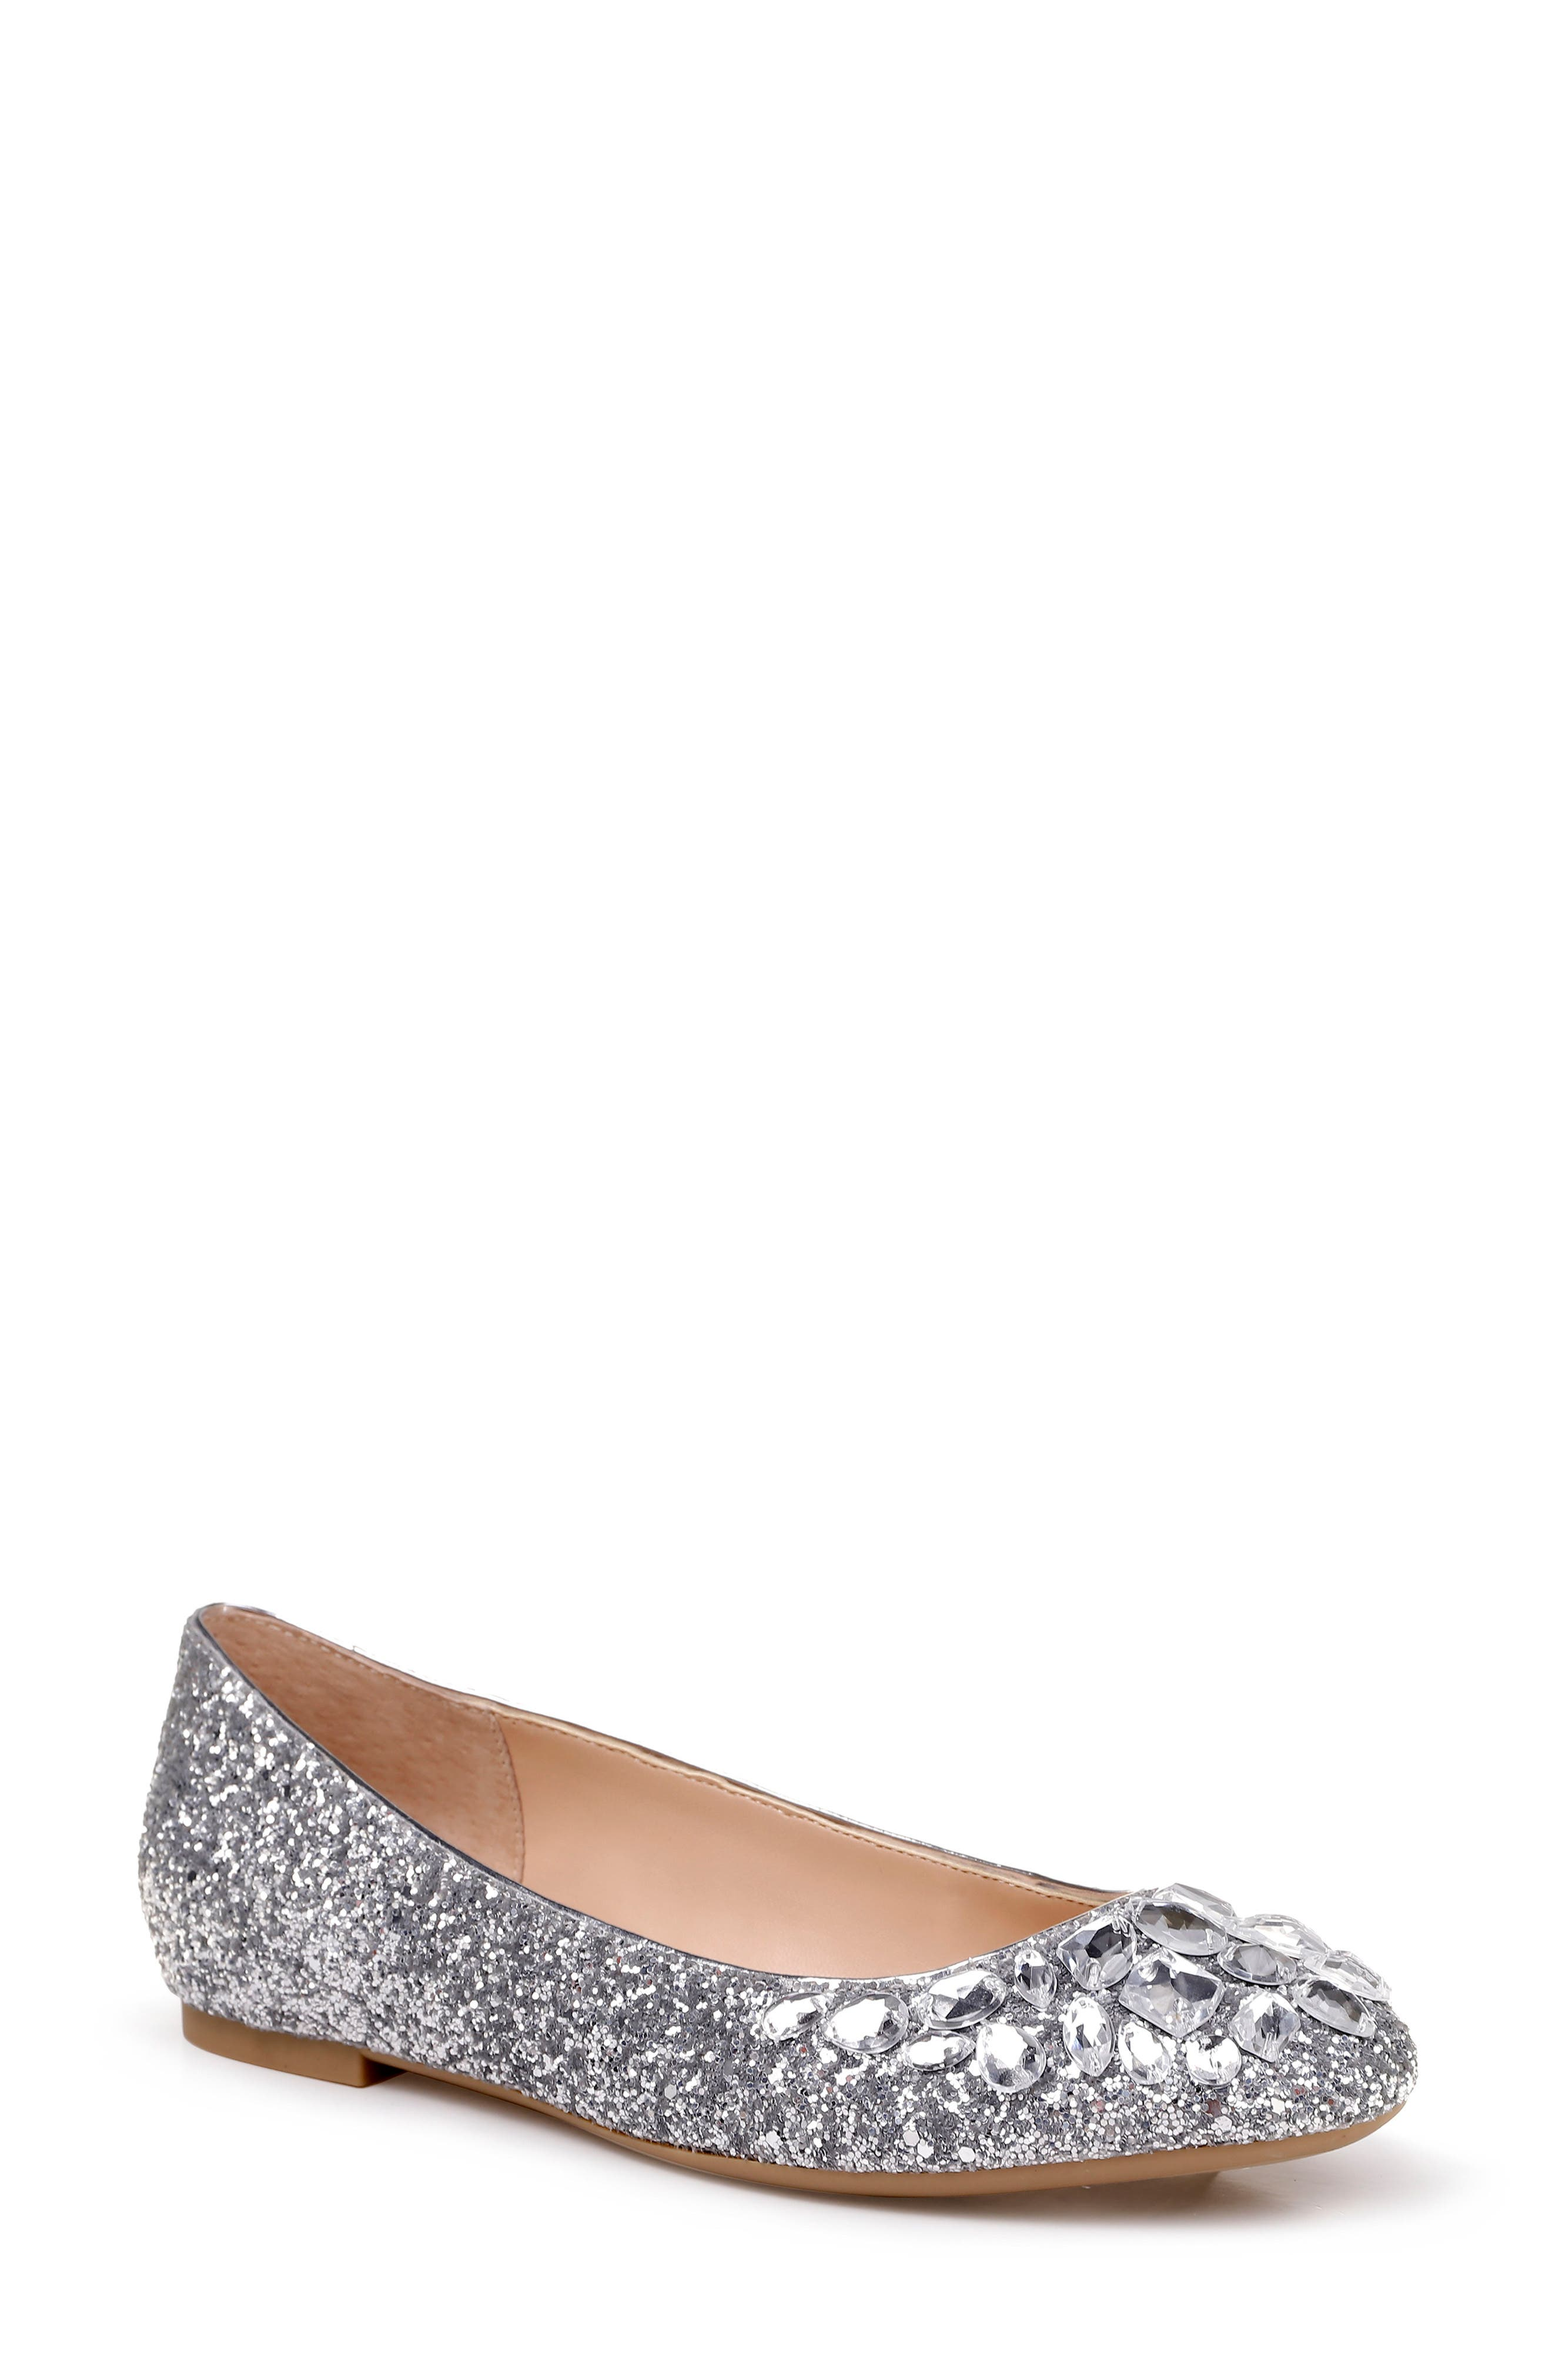 JEWEL BADGLEY MISCHKA, Mathilda Embellished Ballet Flat, Main thumbnail 1, color, SILVER GLITTER